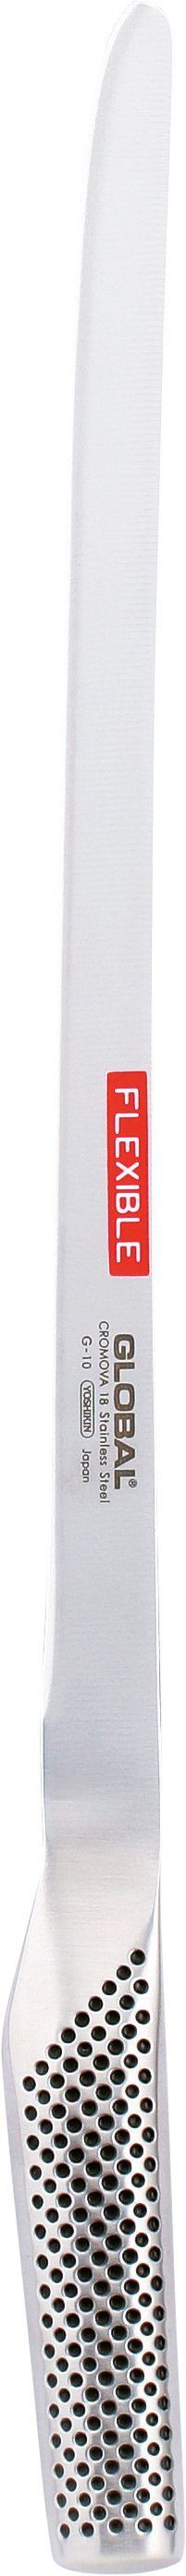 GLOBAL G-10 Lachs-Schinkenmesser